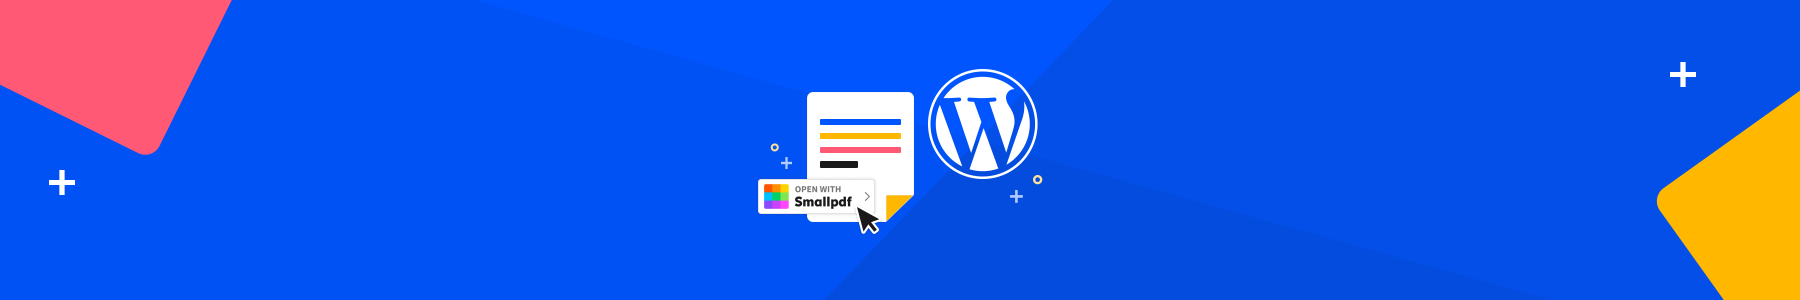 embed-pdf-wordpress@2x